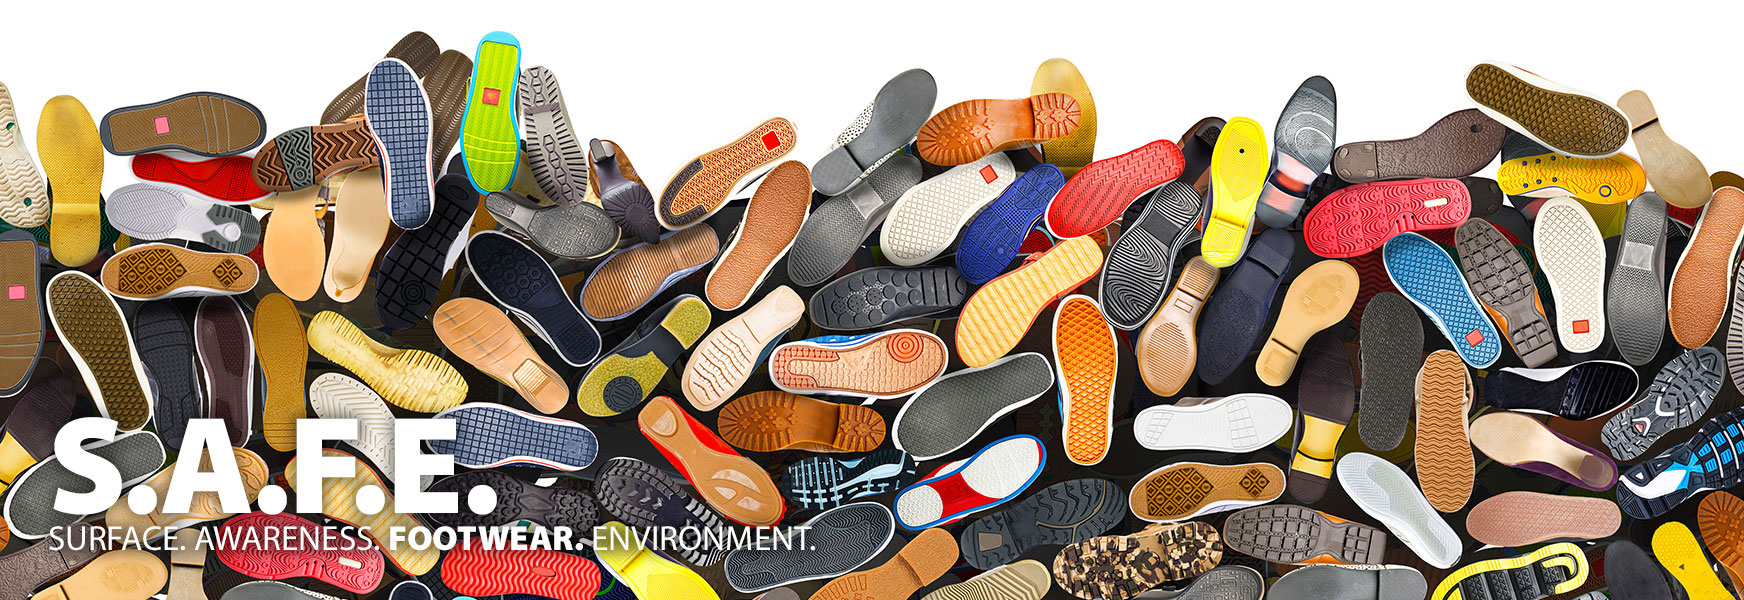 Pile of shoes showing treads